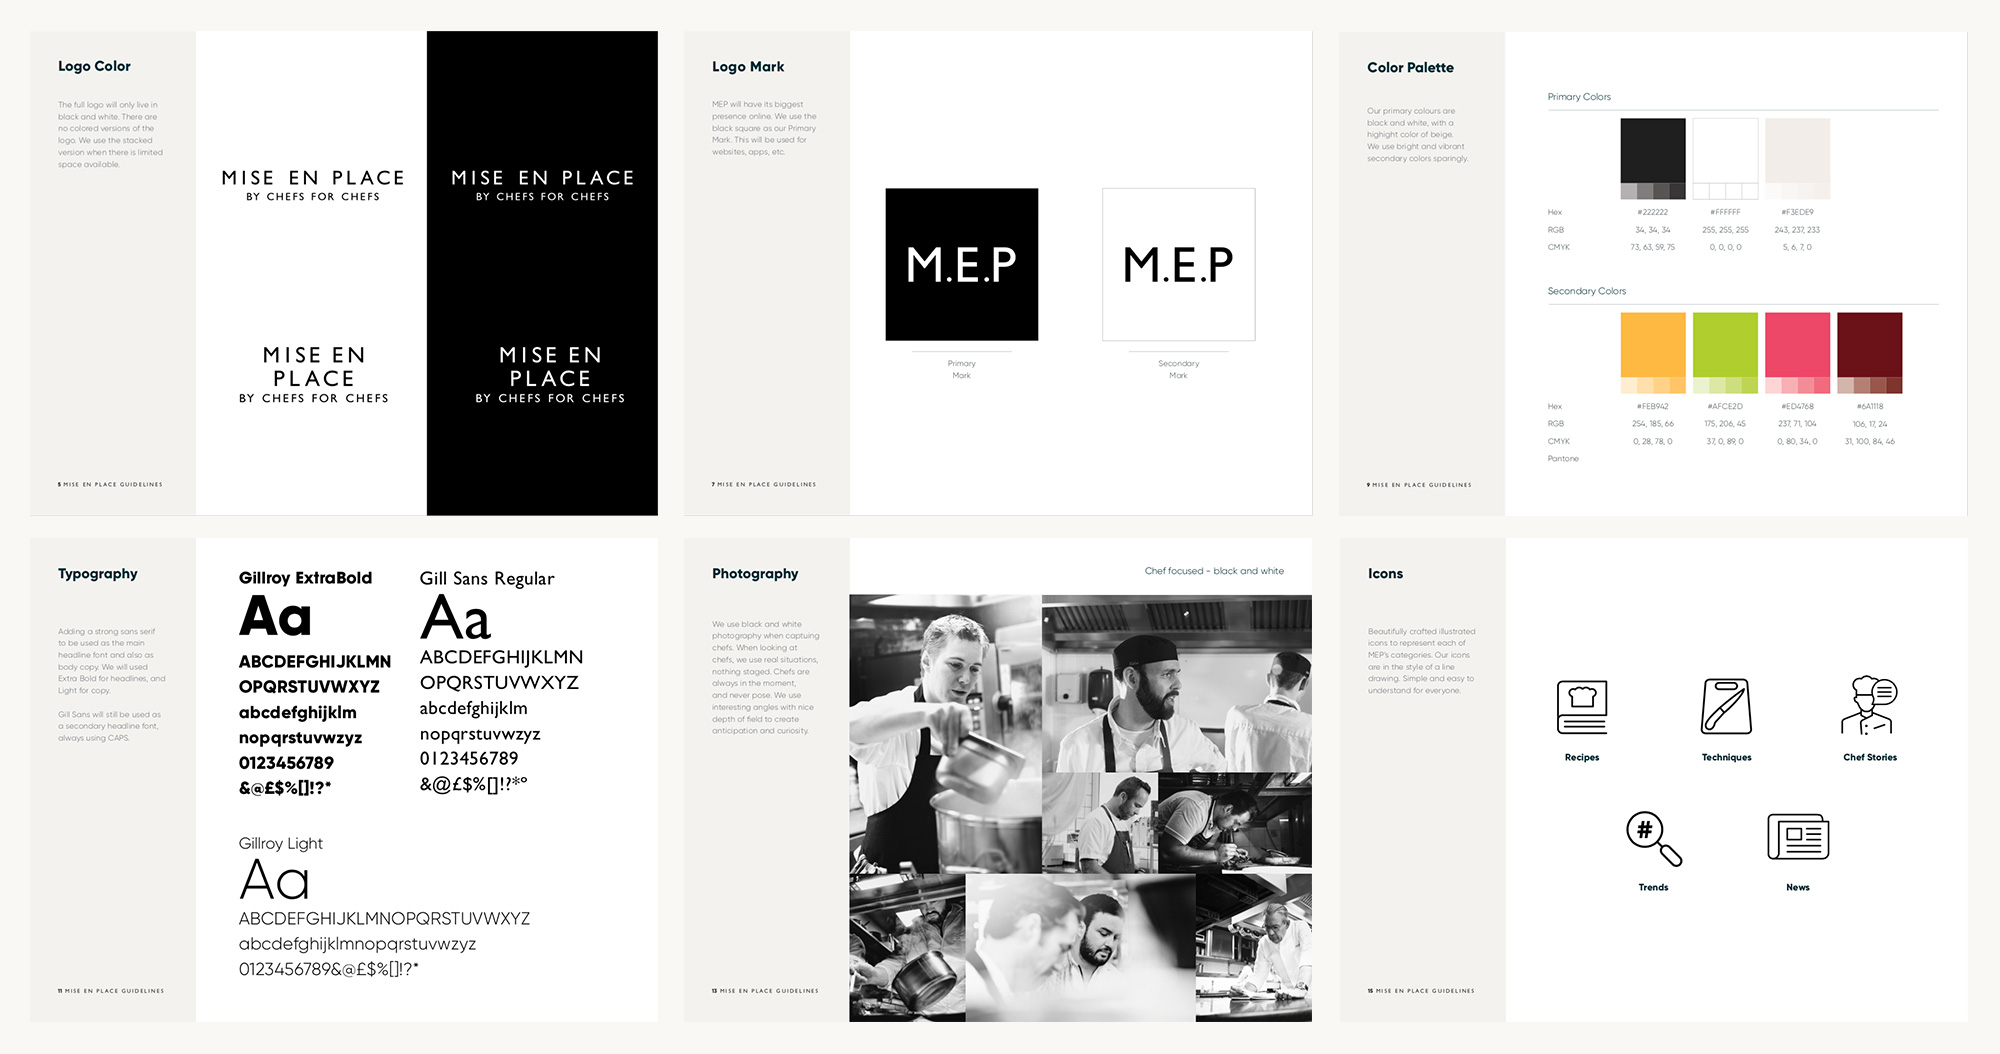 mep_guides